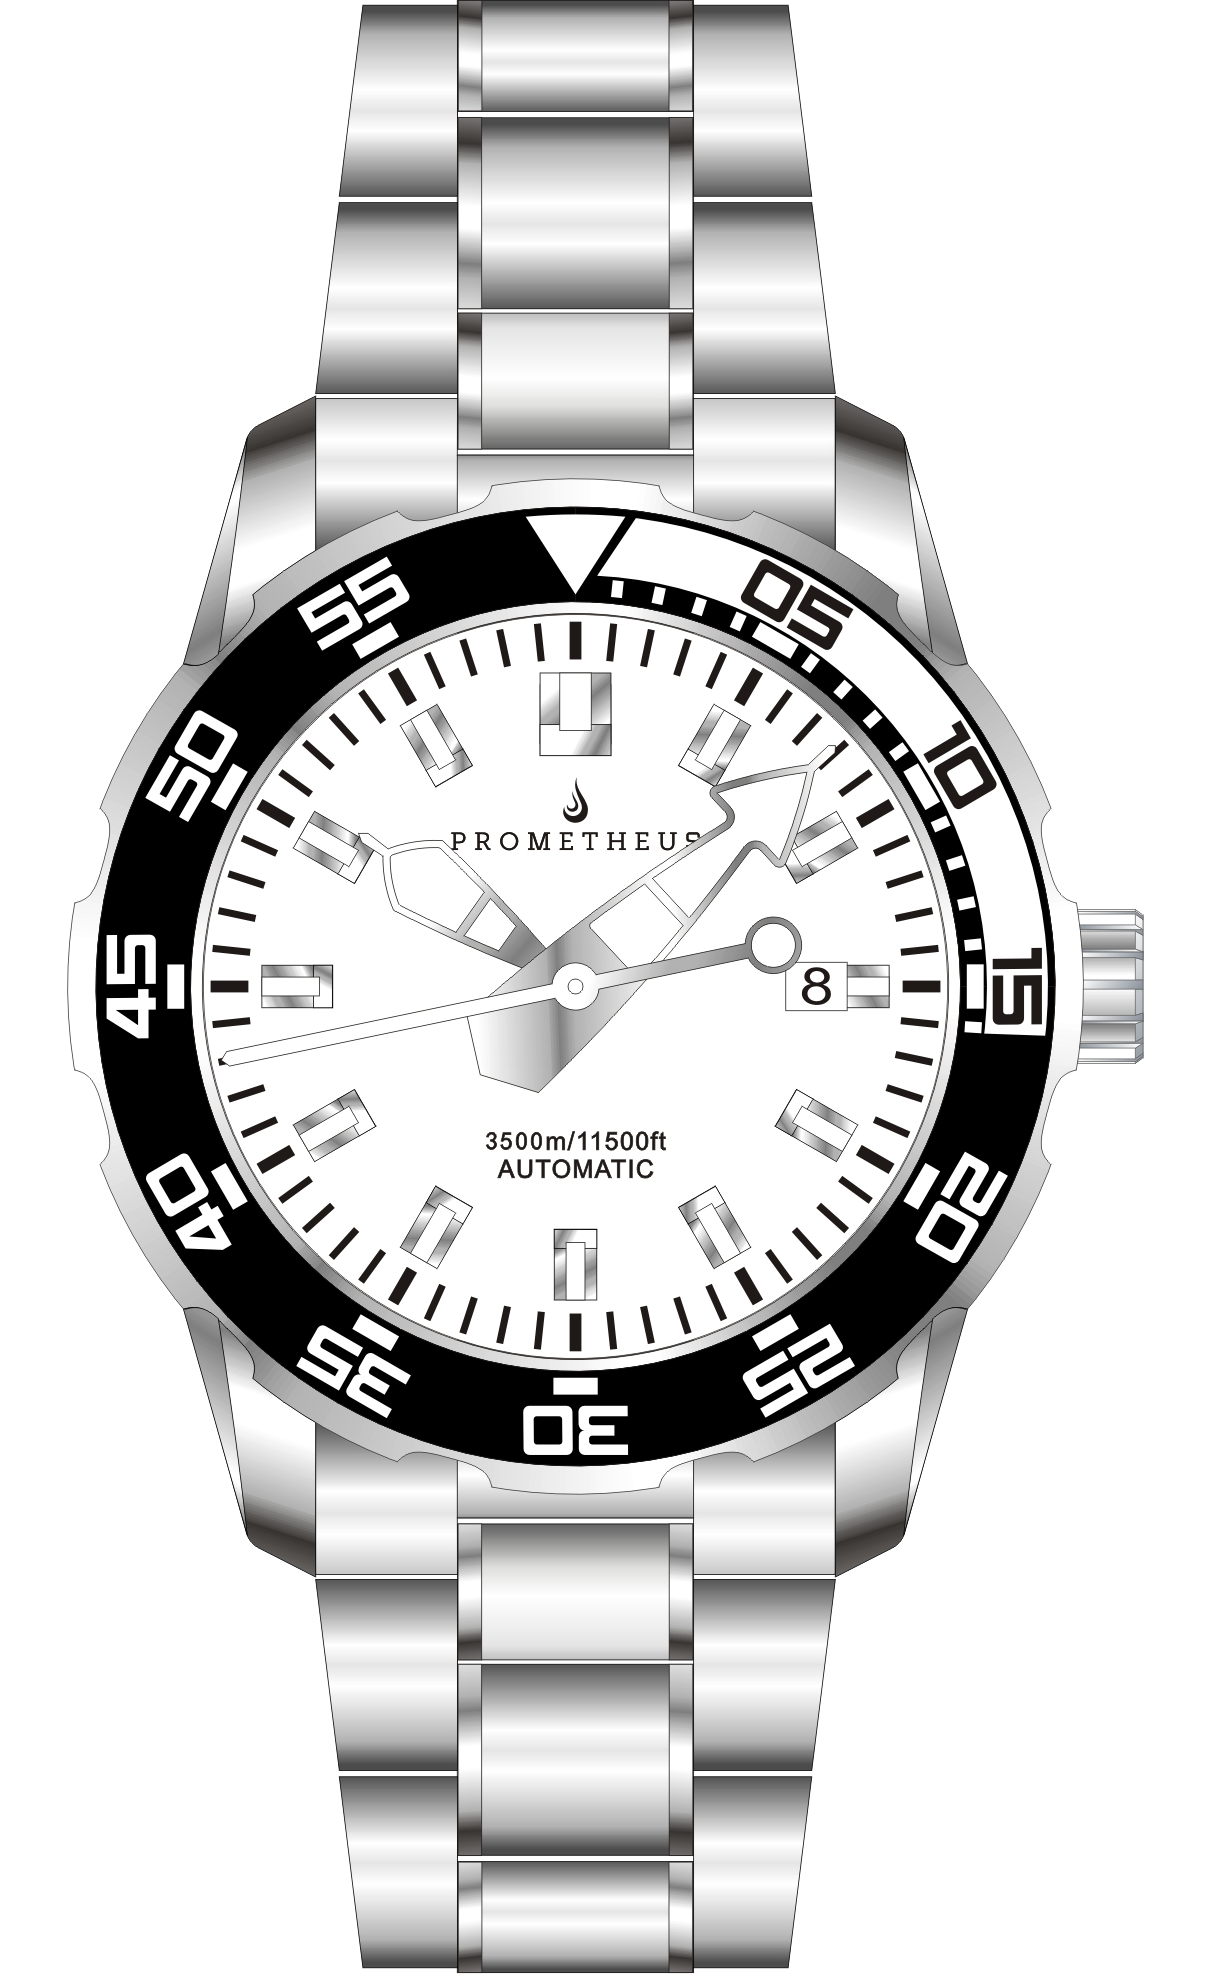 Pre-Order Prometheus Poseidon Stainless Steel White Bezel Lumed White Dial 3500m Miyota 9015 Automatic Diver Watch